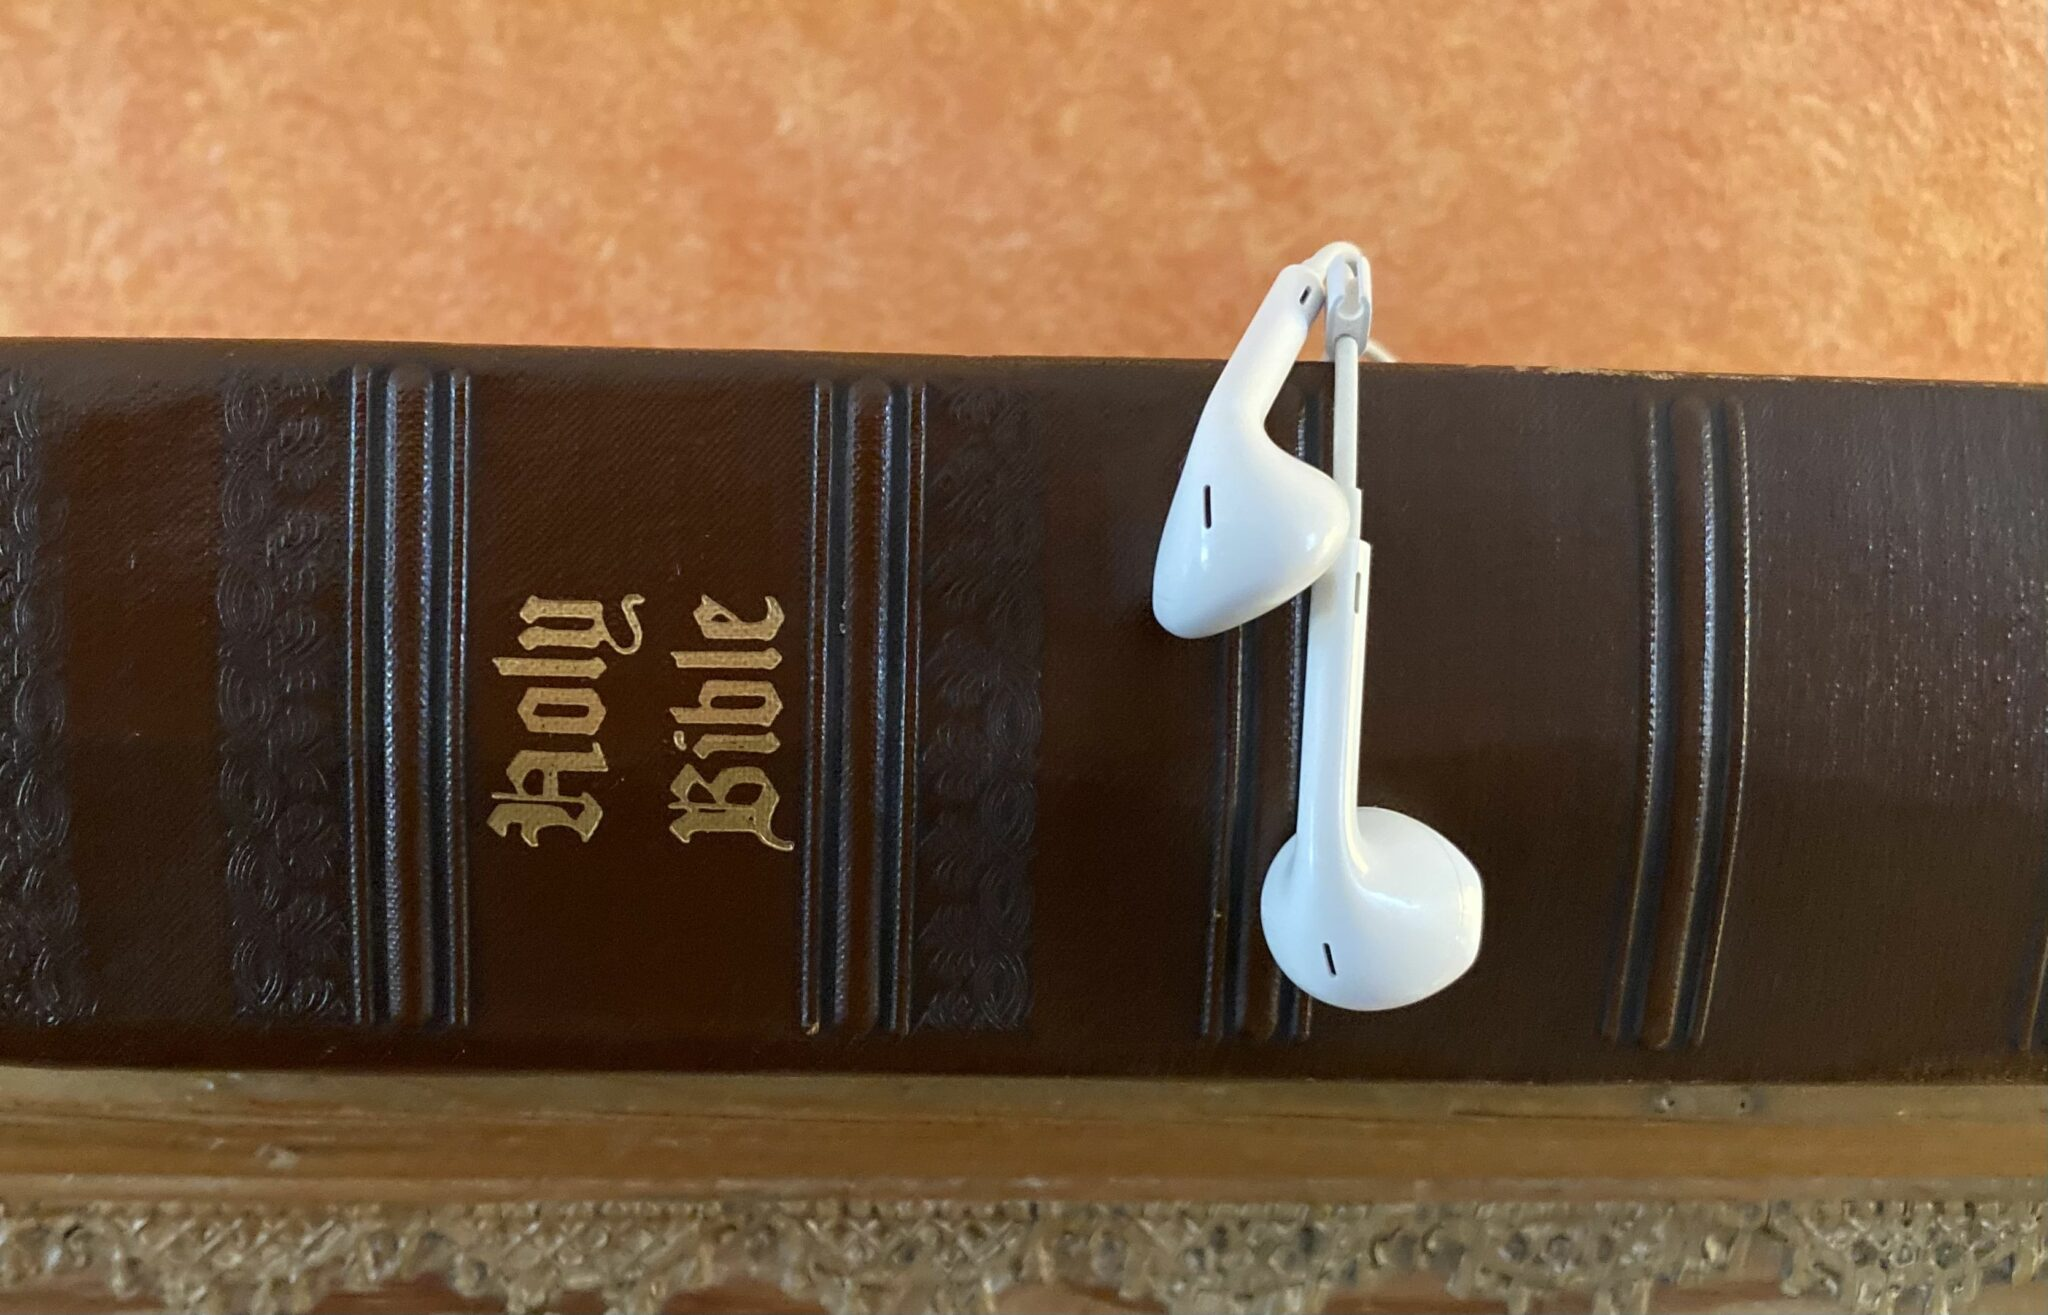 Some Good News: Top Podcast Brings Bible to Thousands